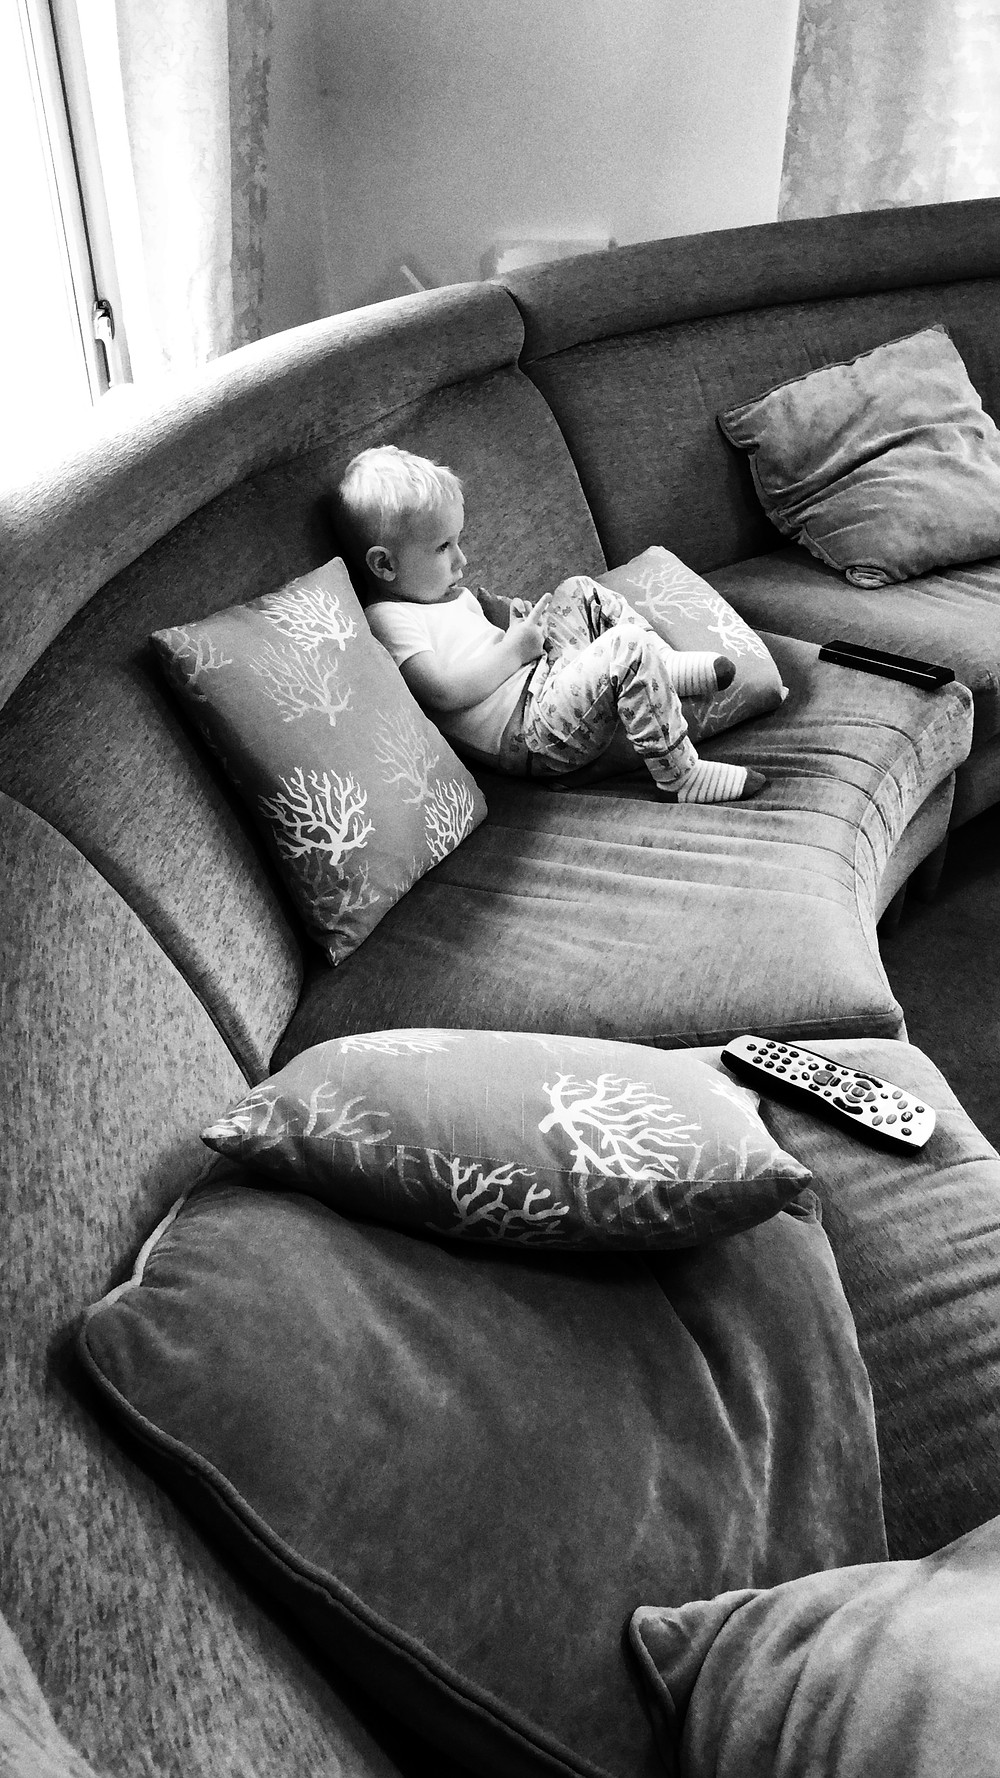 Best-aberdeen-family-children-photographer-montrose-arbroath-indoor-lifestyle-natural-light-boy-on-sofa-black-and-white